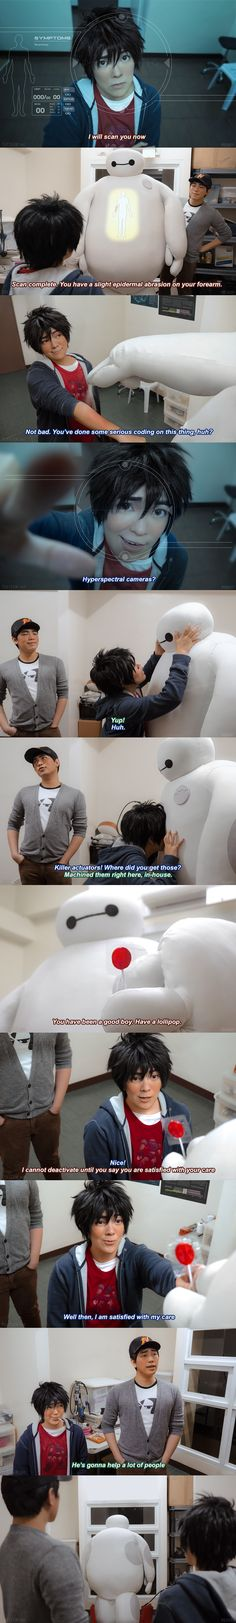 "Big Hero 6: He's gonna help a lot of people by behindinfinity.deviantart.com on @DeviantArt - Hiro, Tadashi, and Baymax from ""Big Hero 6""; uploaded by the first. This is Part 2 of 2; also, just to be clear, Baymax is also played by a cosplayer here."